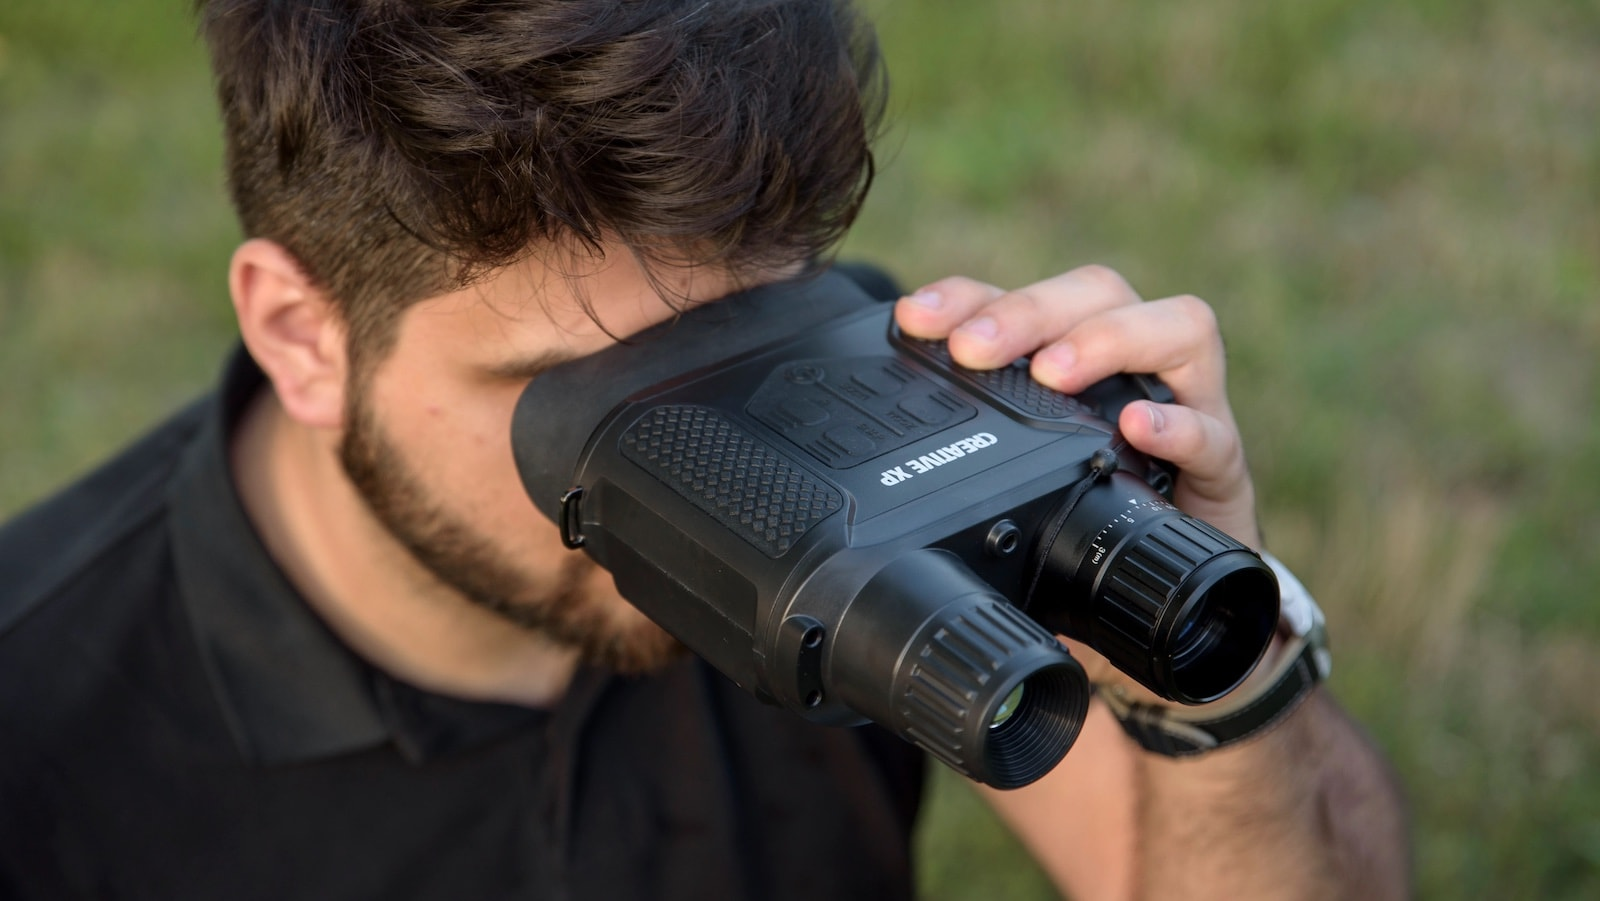 CREATIVE XP Digital Night Vision Binoculars let you see clearly in complete darkness